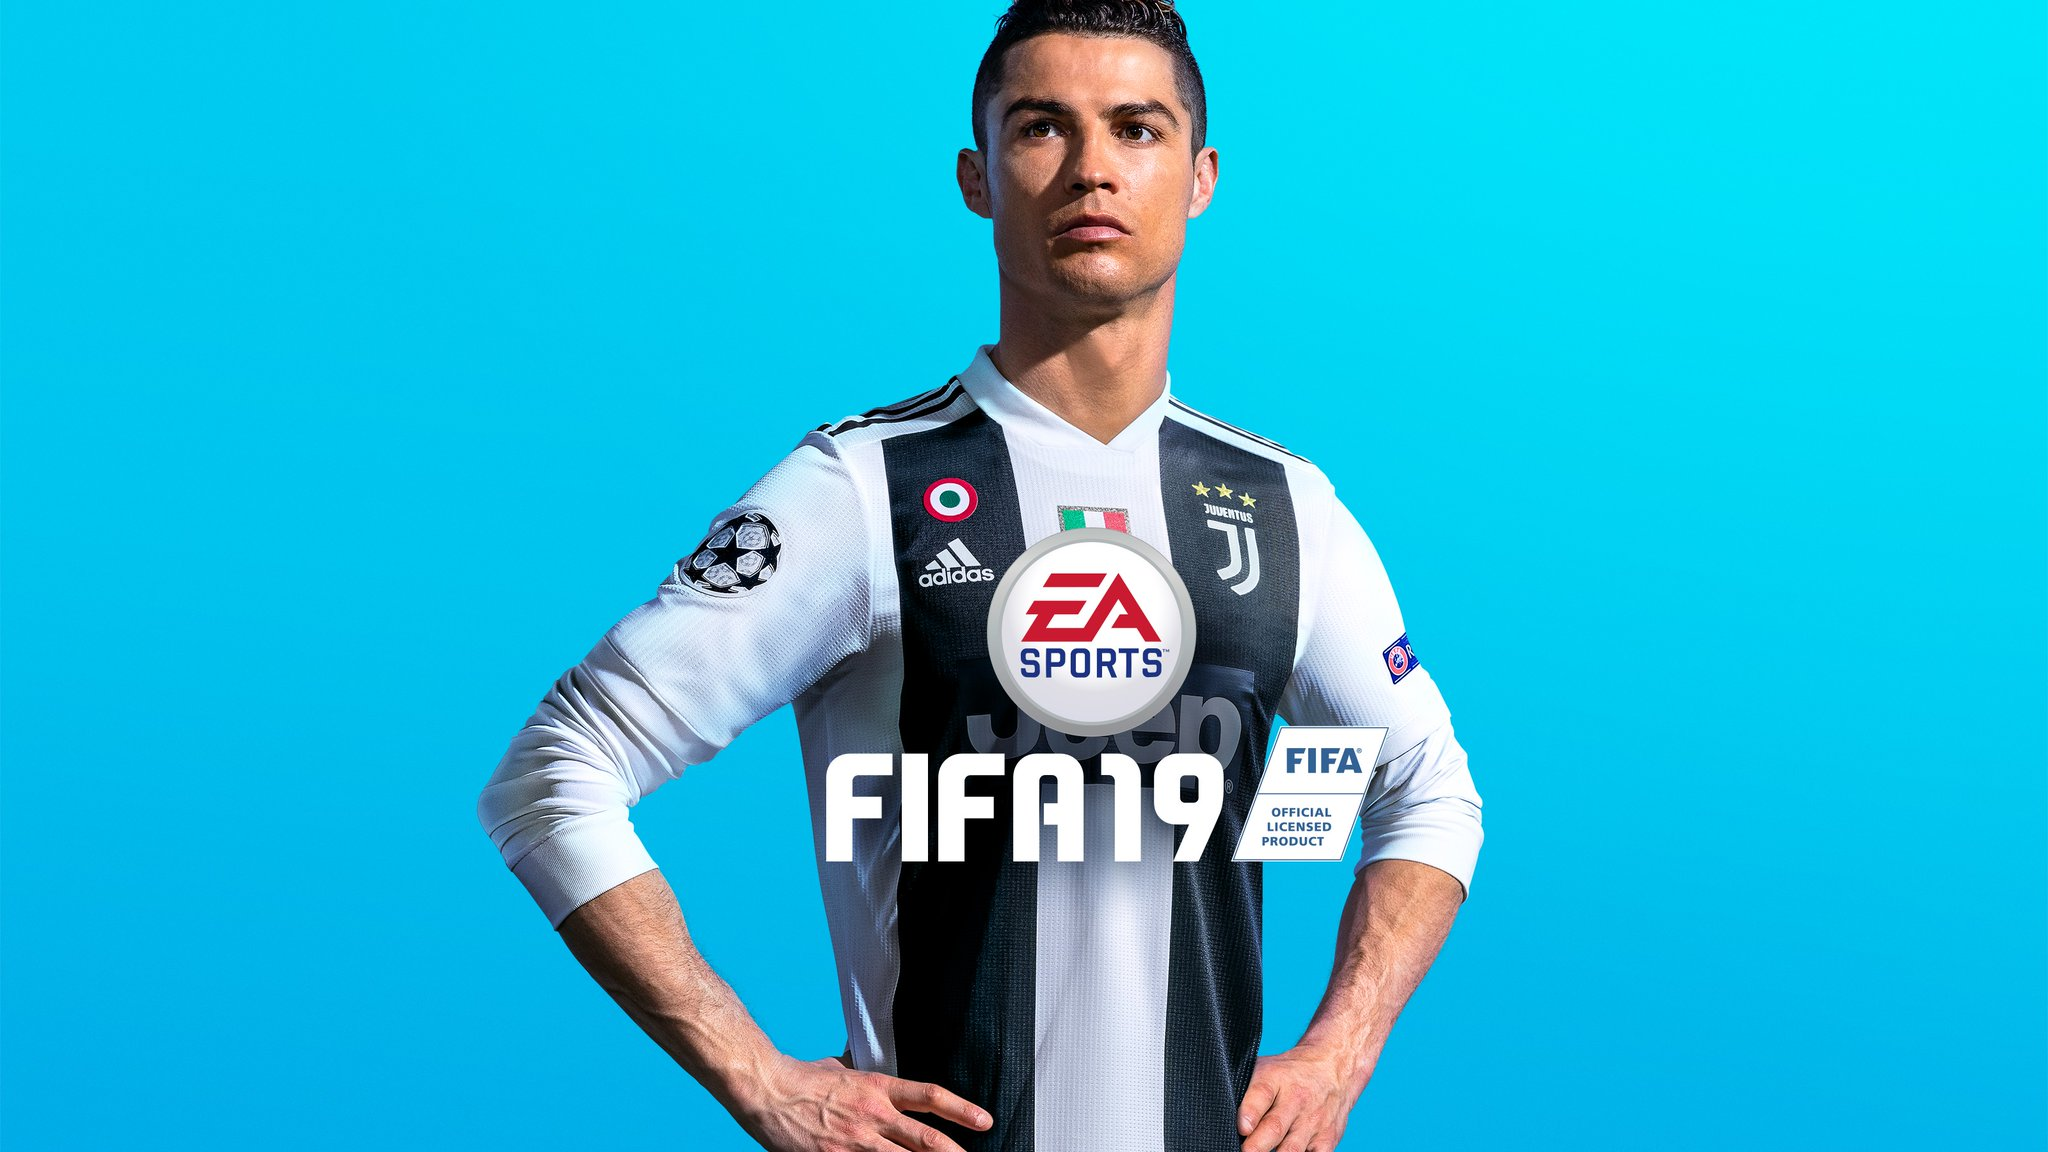 Ronaldo No Longer Features On EA FIFA 2019 Social Media Accounts